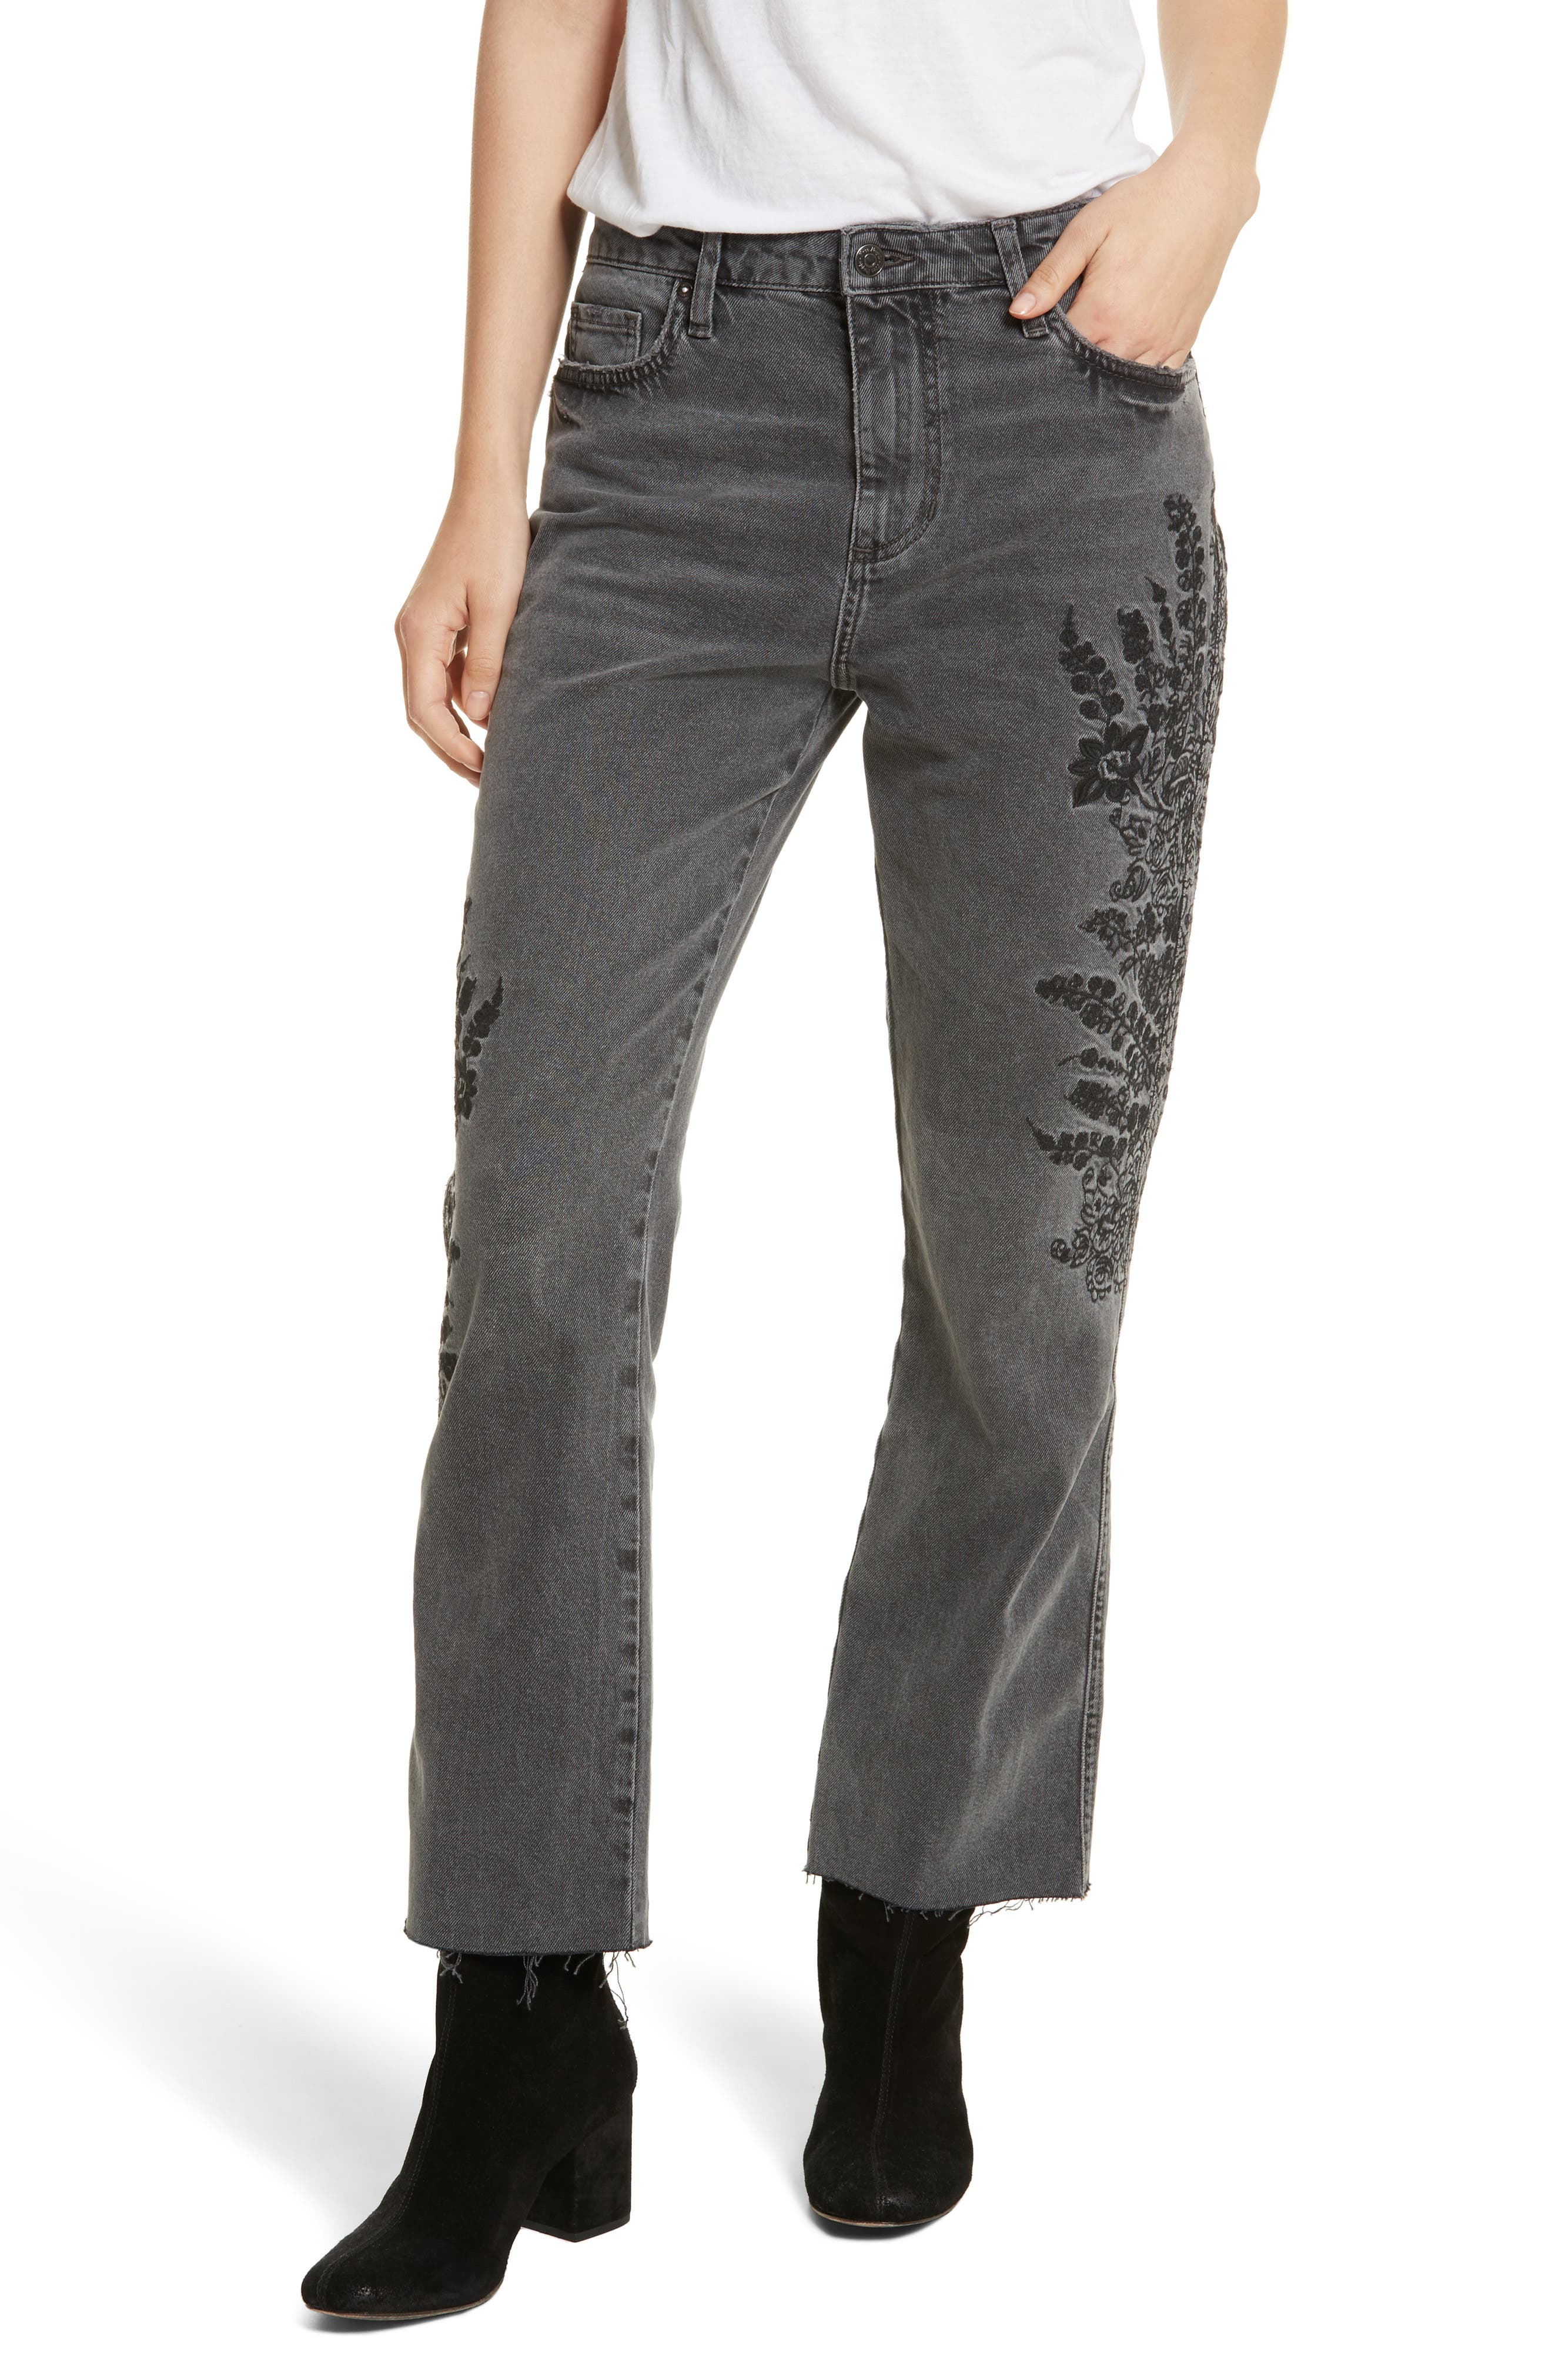 Alternate Image 1 Selected - Free People Embroidered Crop Girlfriend Jeans